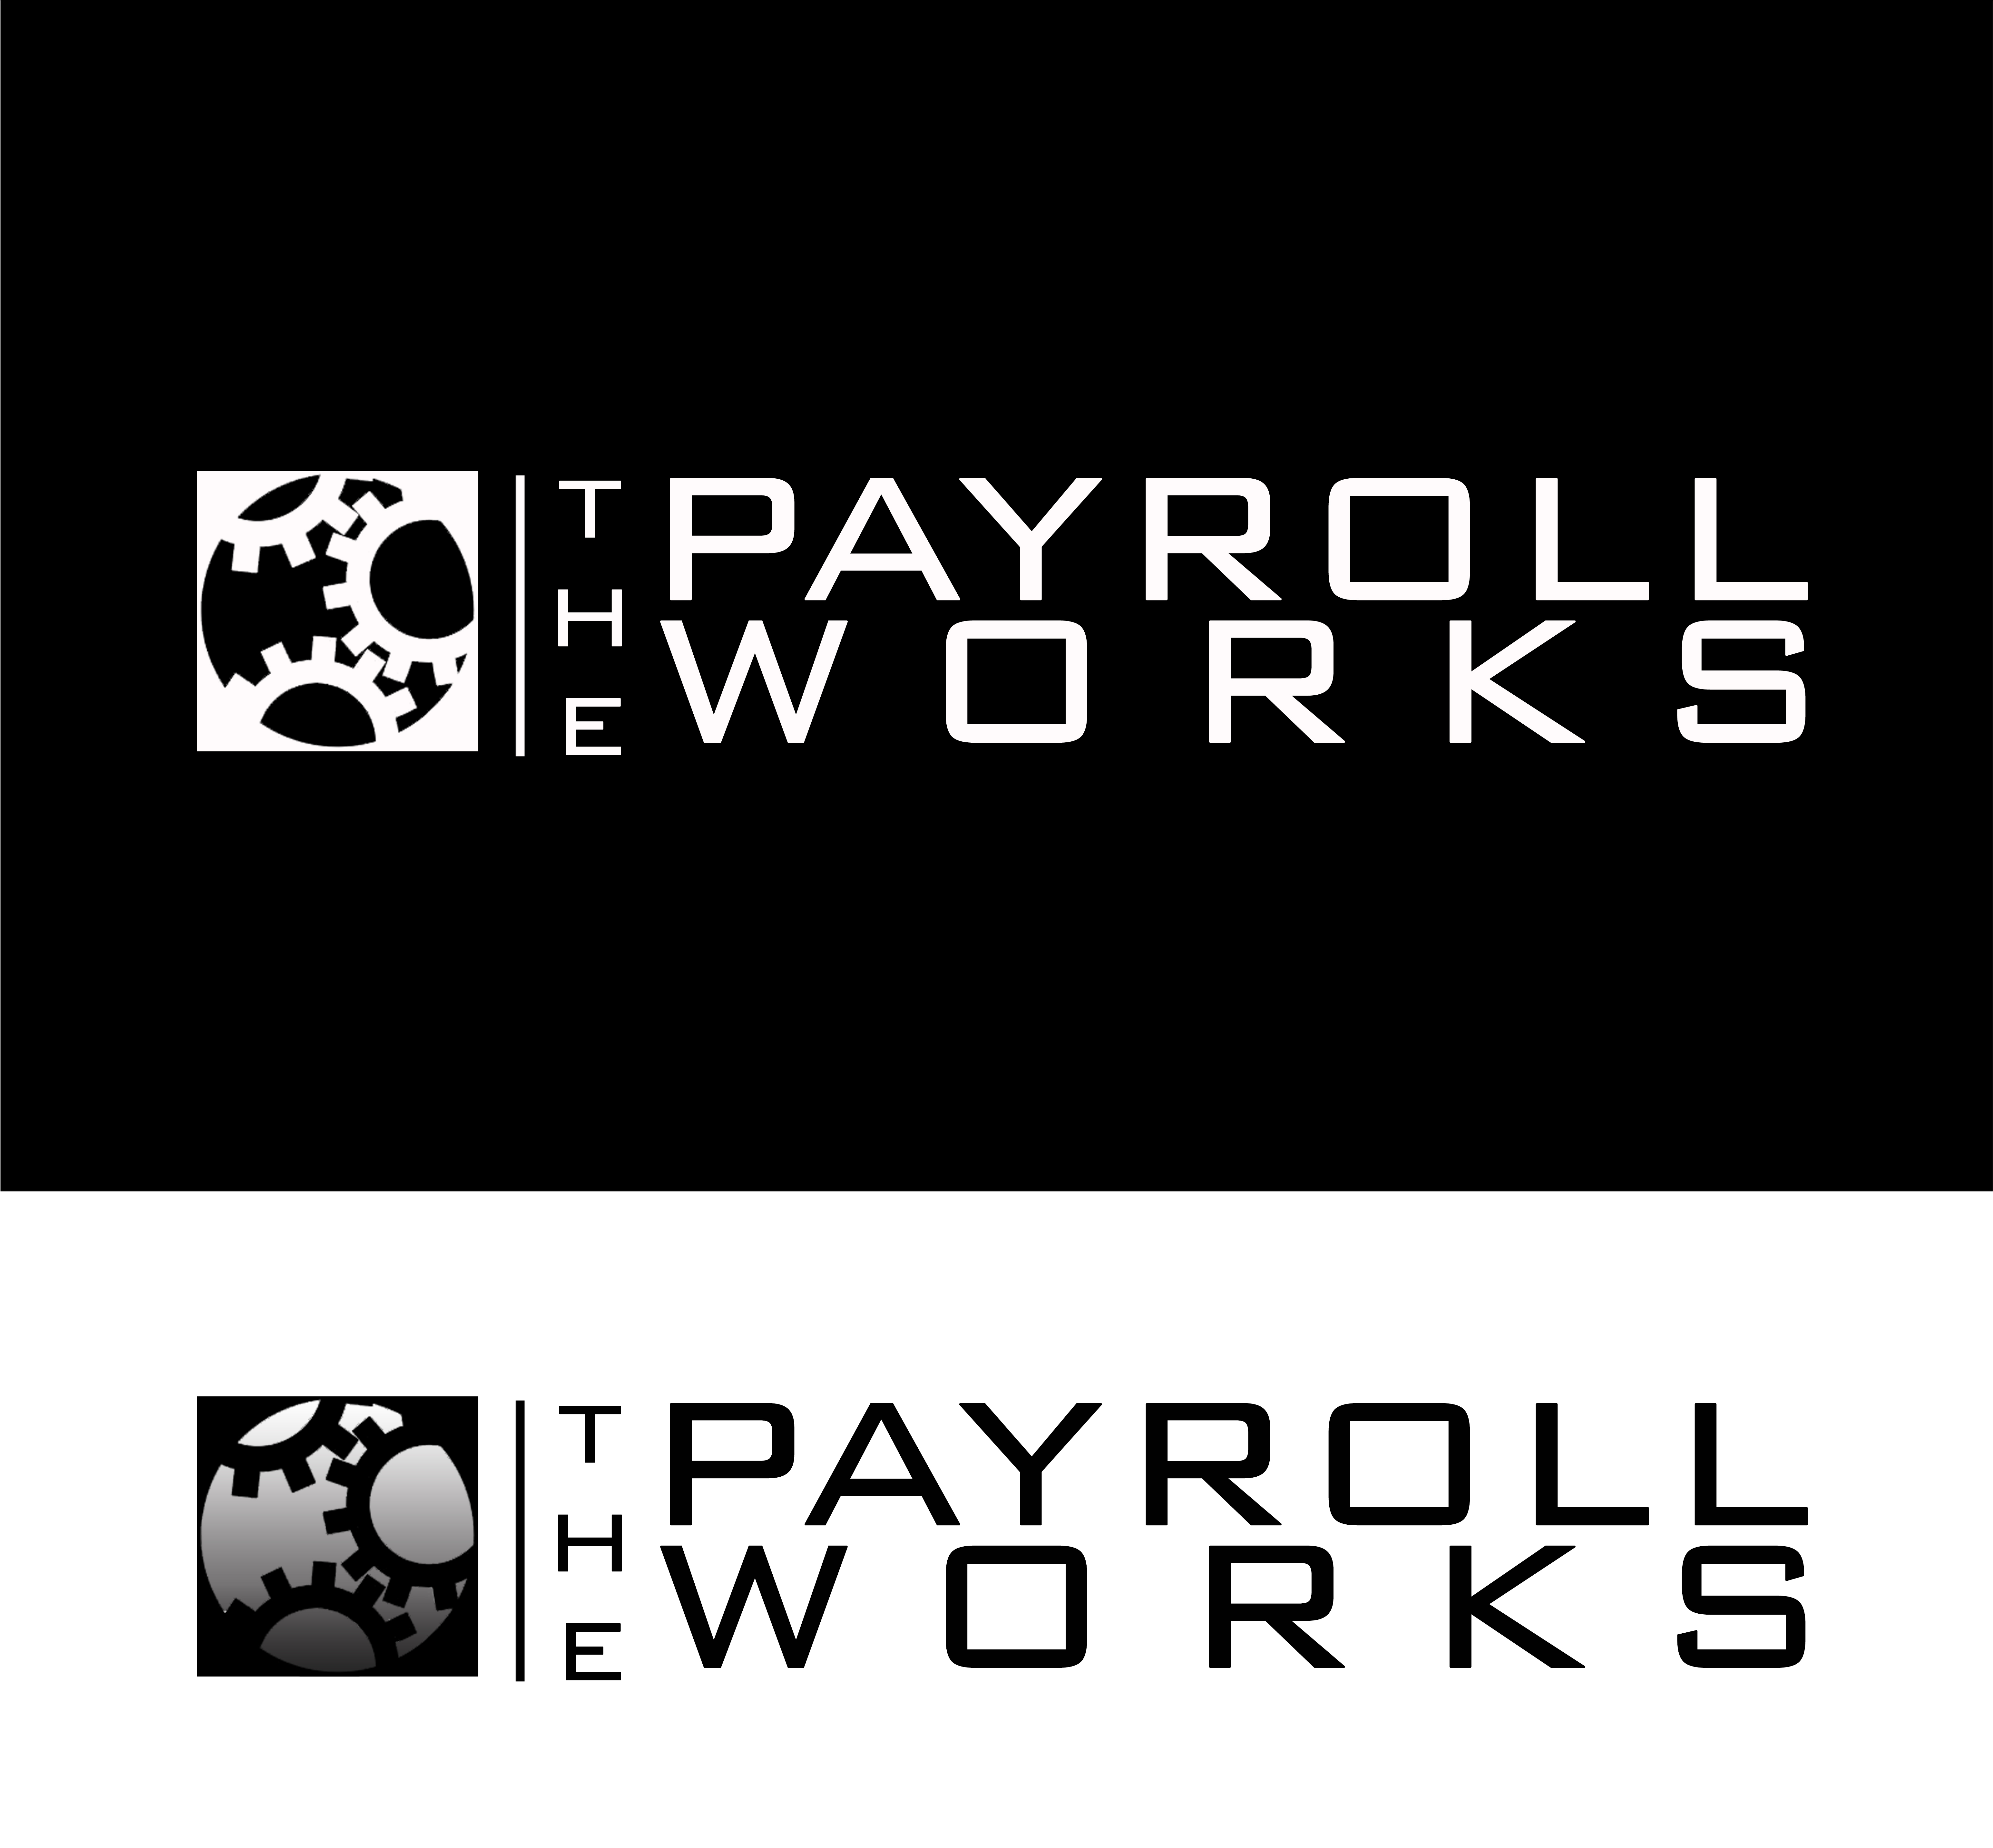 Logo Design by JSDESIGNGROUP - Entry No. 155 in the Logo Design Contest Captivating Logo Design for The Payroll Works.